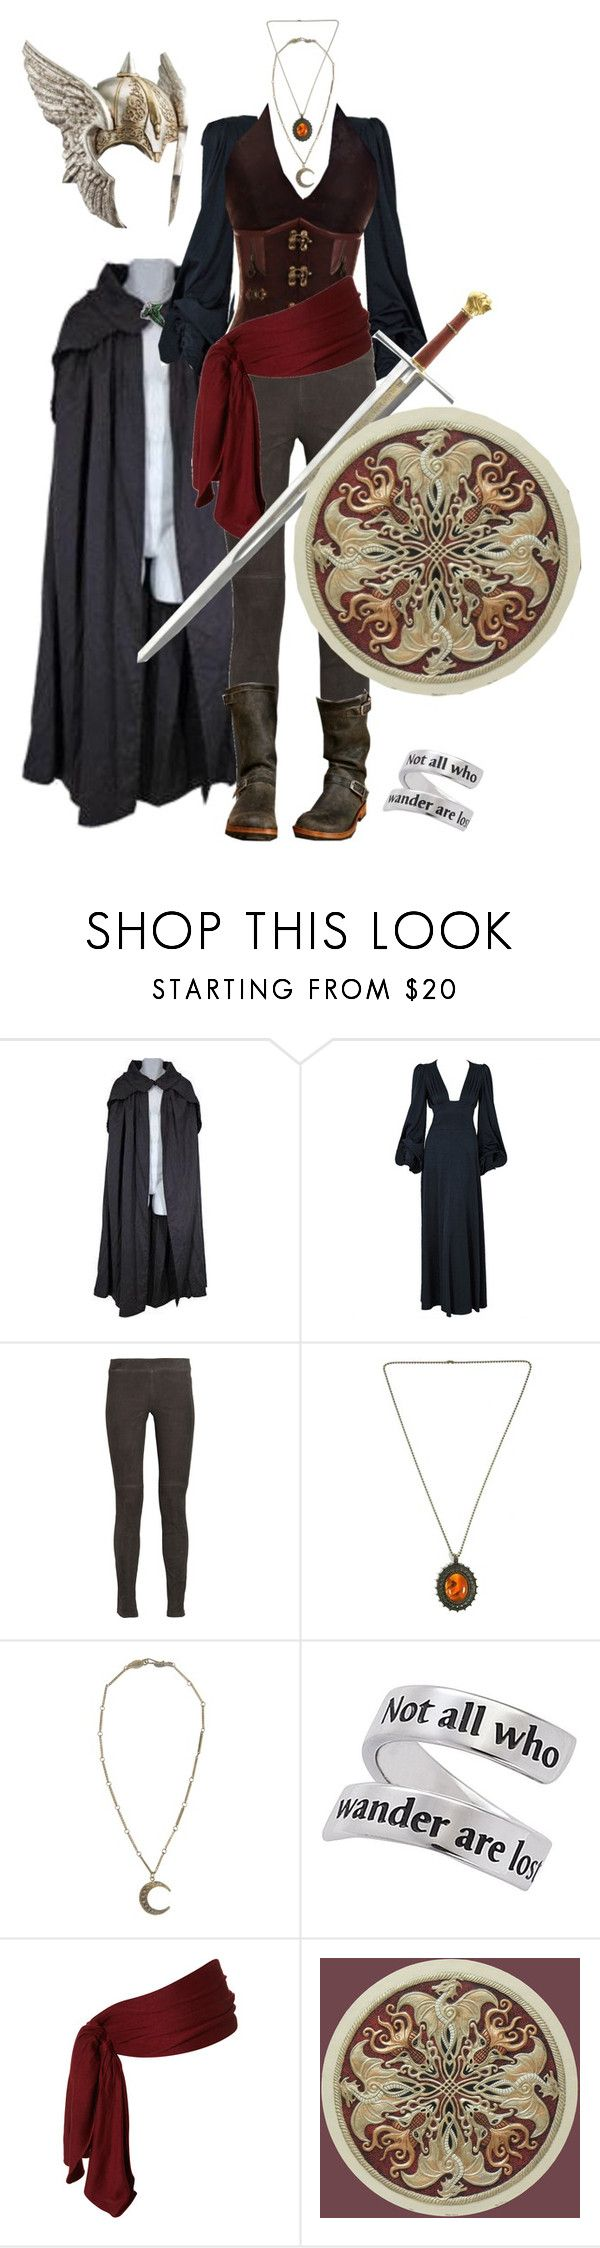 """""""The Female Warrior"""" by ltspork ❤ liked on Polyvore featuring Council, Biba, Vince, Alkemie, S.W.O.R.D., corset, helmet, lord of the rings, warrior and cloak"""